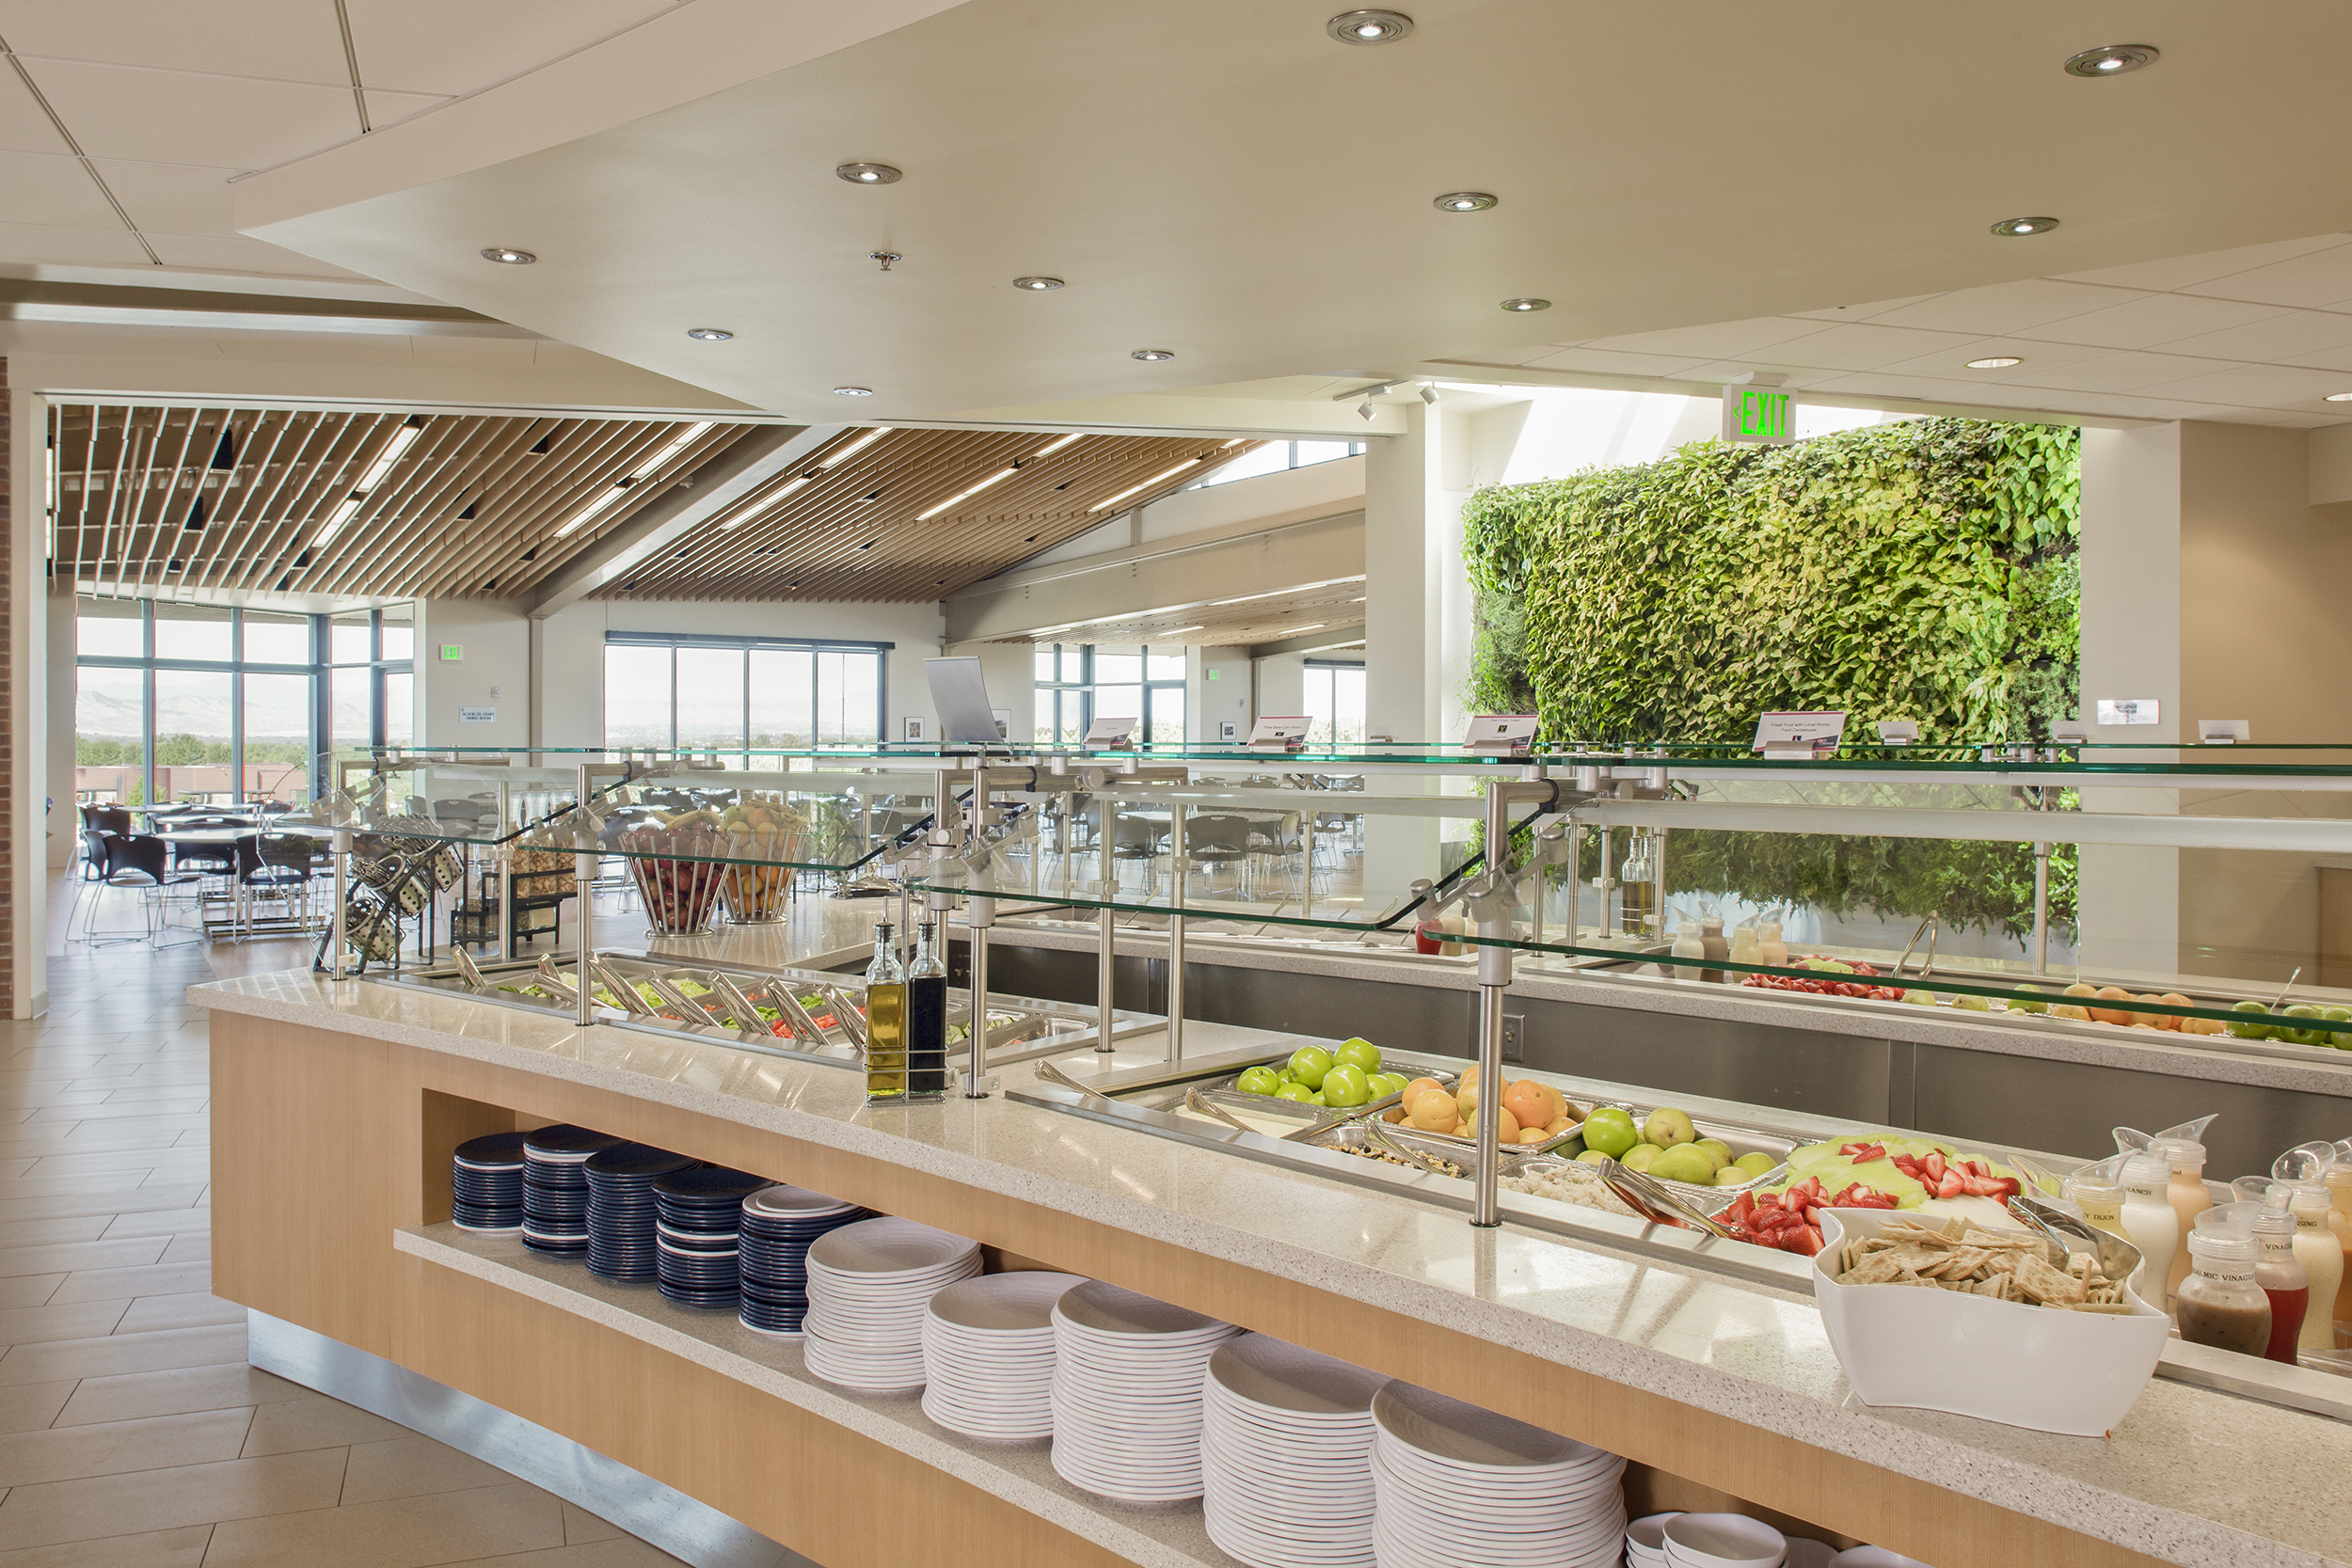 ORGANIC SALAD BAR. ELITE PRIVATE SCHOOL CAFETERIA